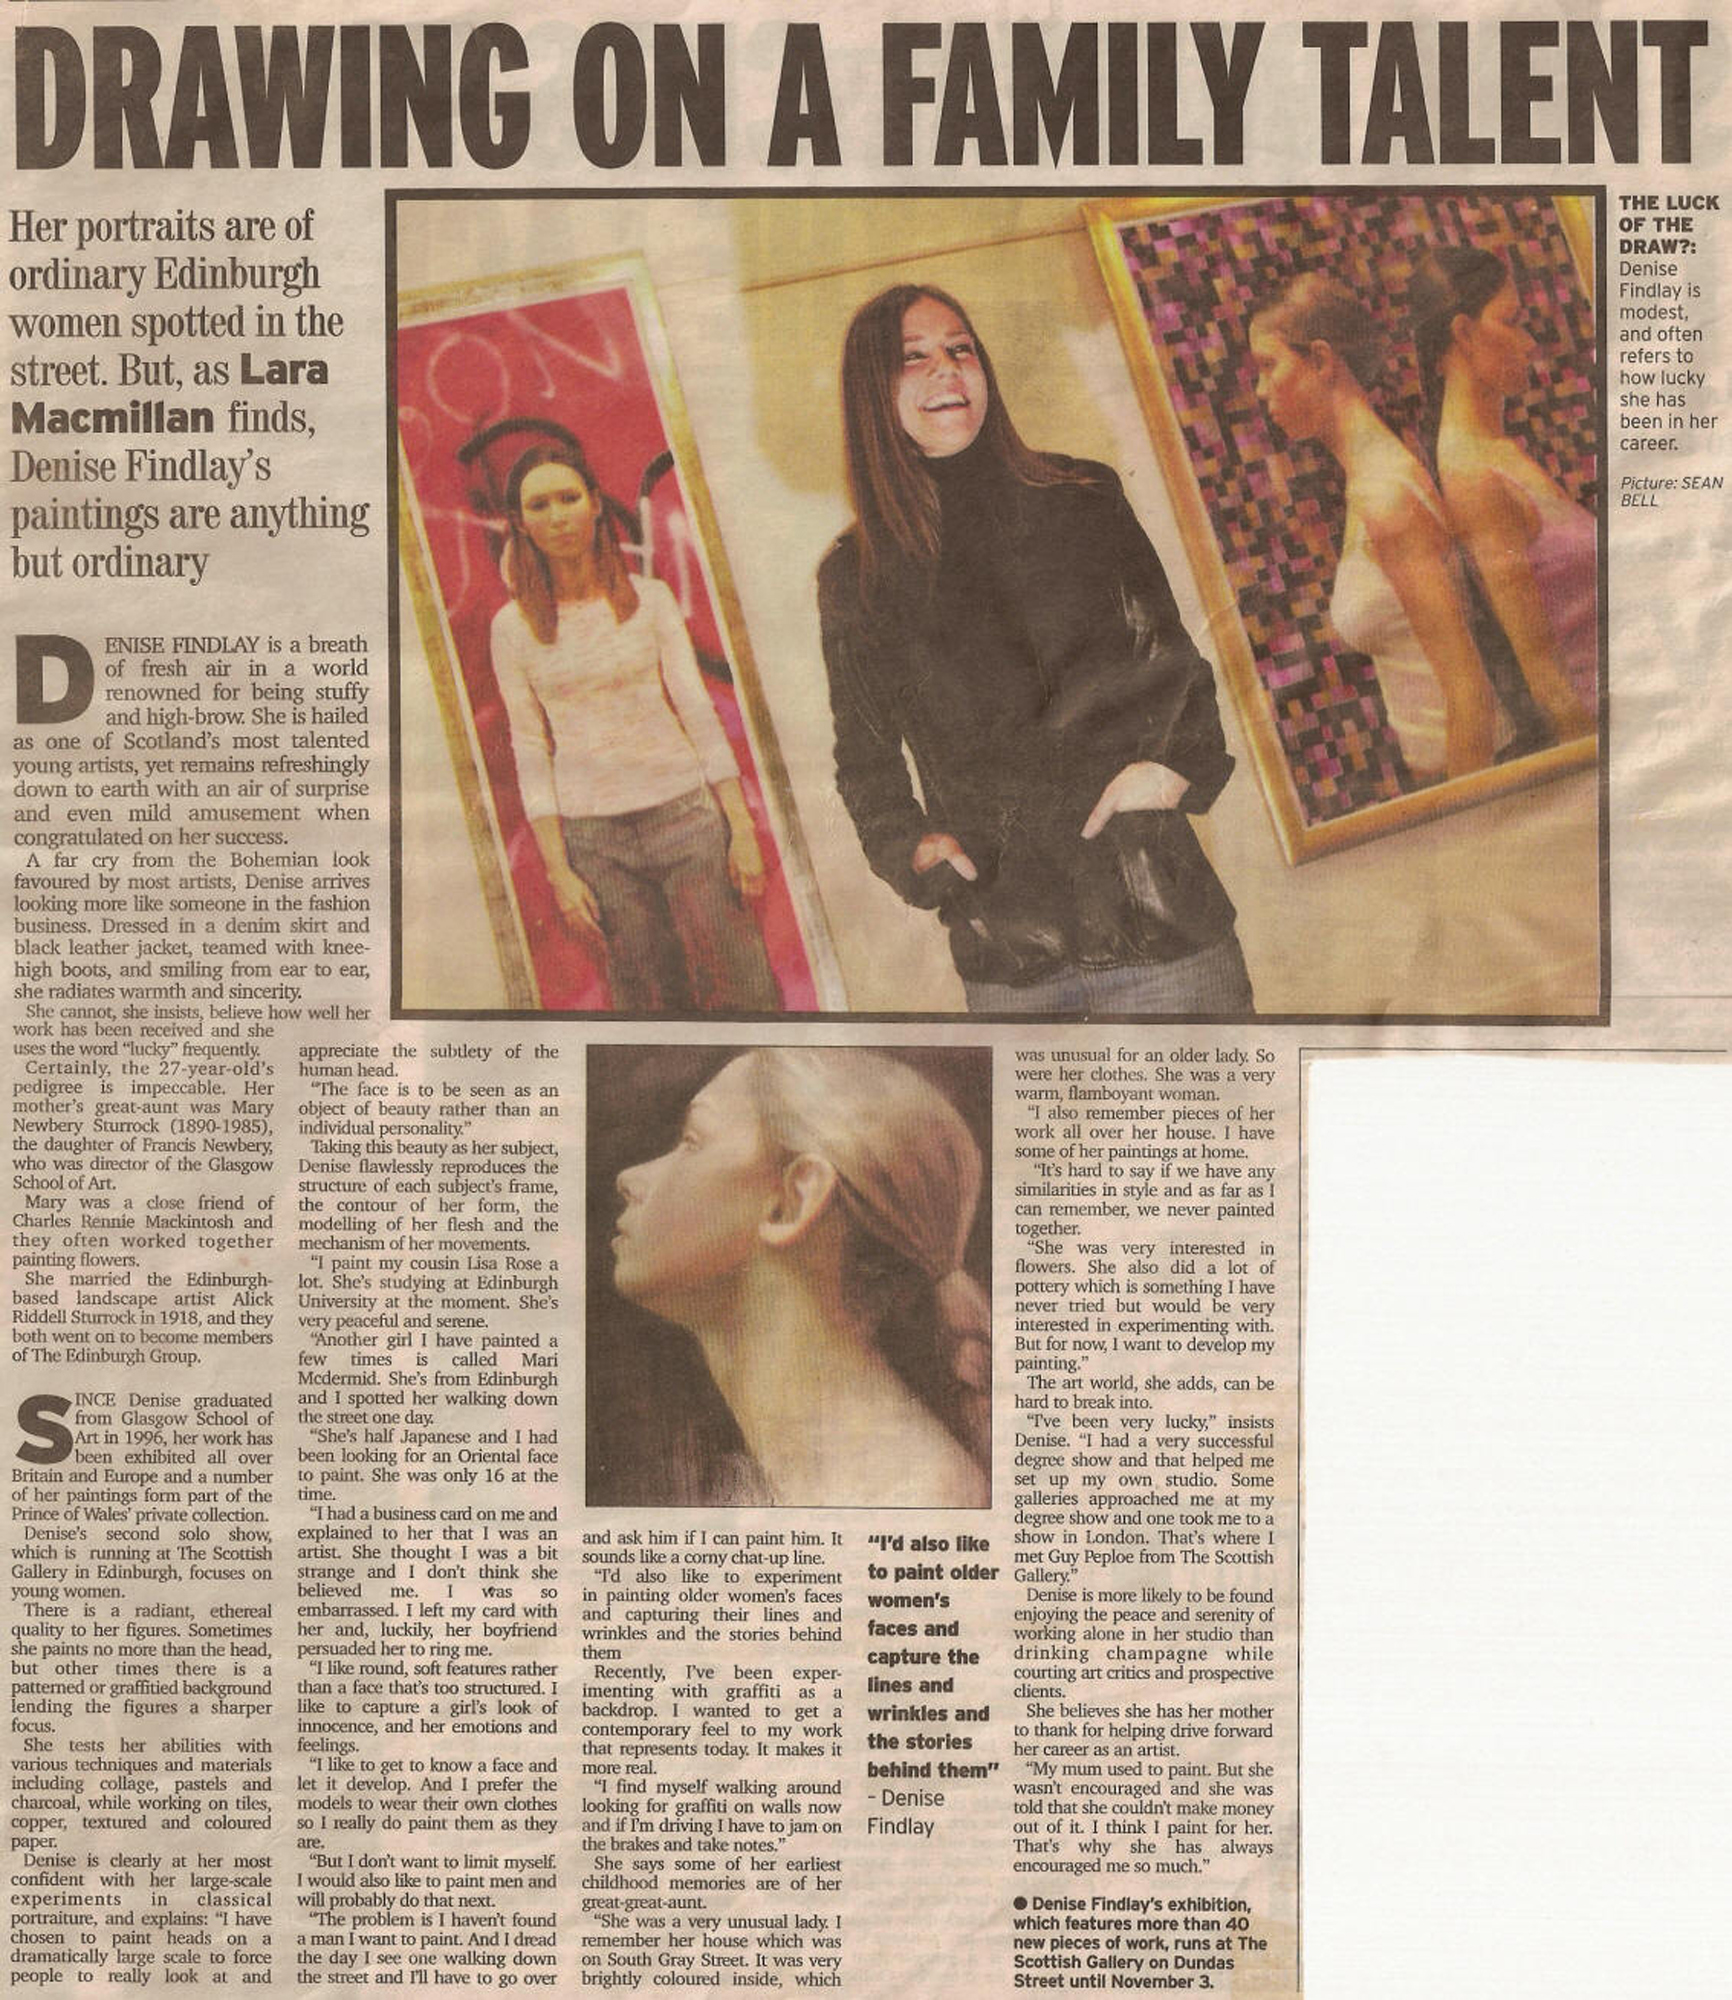 Evening news,18th october 2001